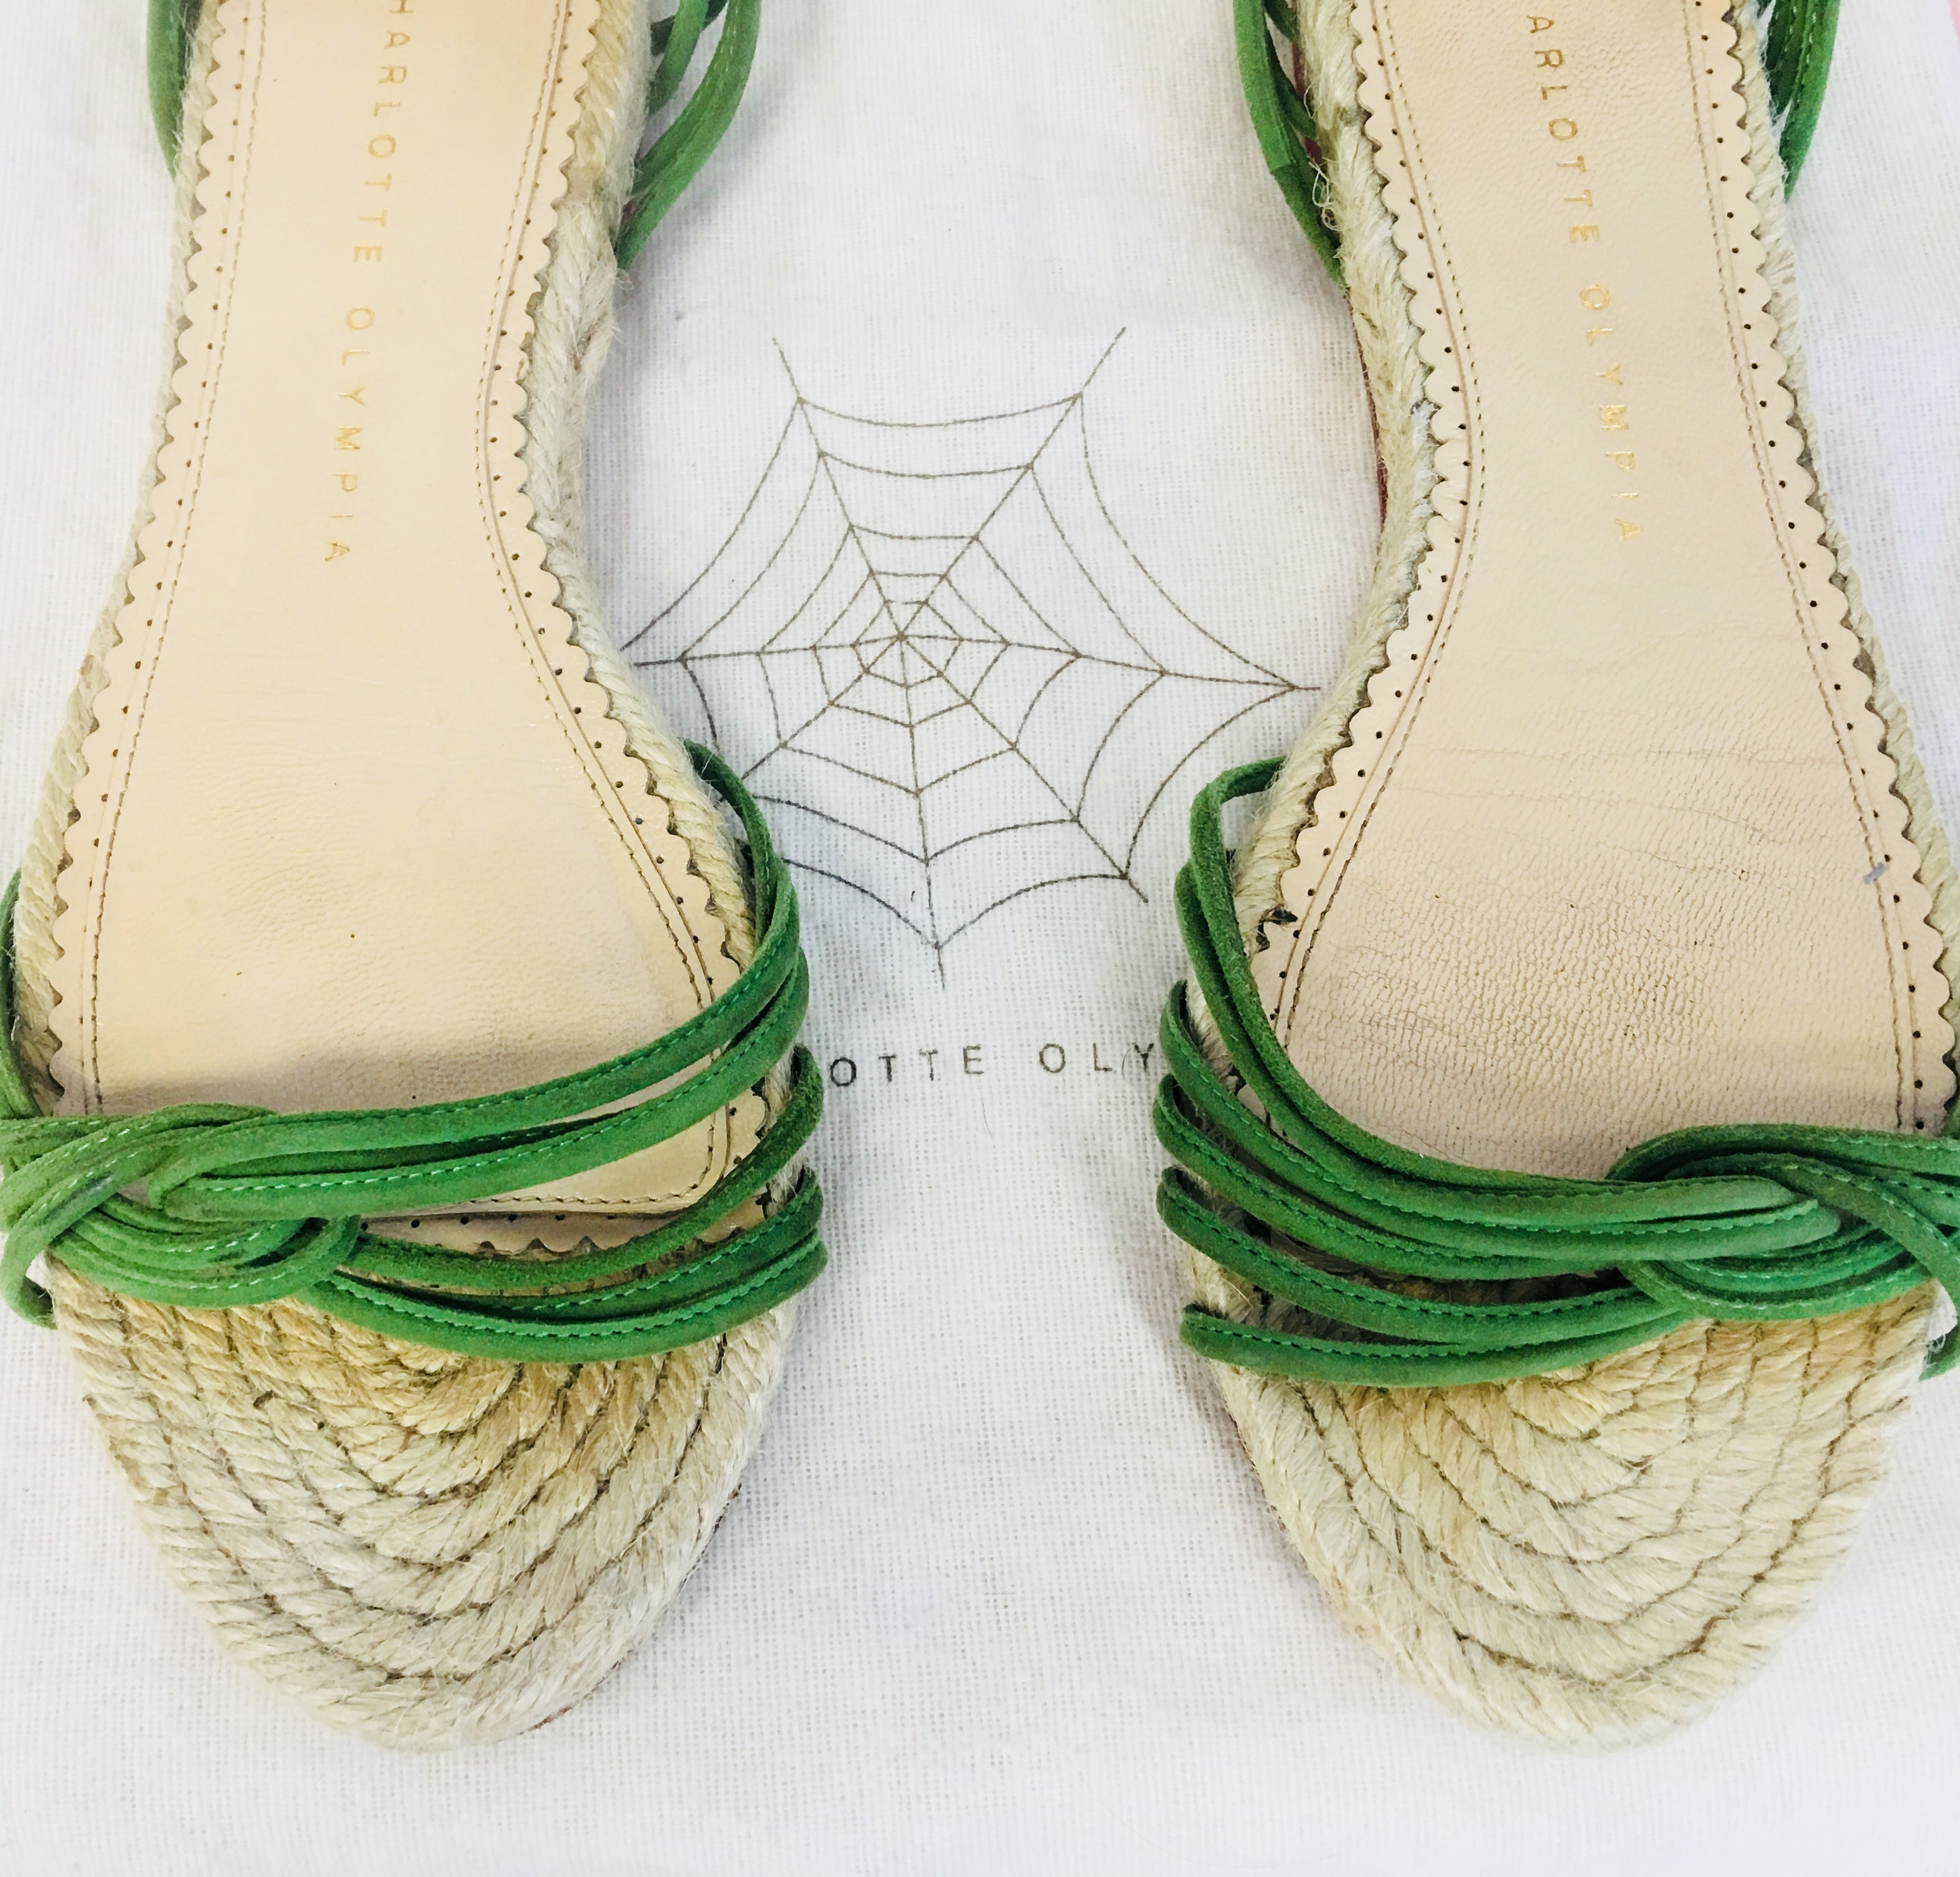 Charlotte Olympia Sandals with banana 🍌 tassels - Vanity's Vault